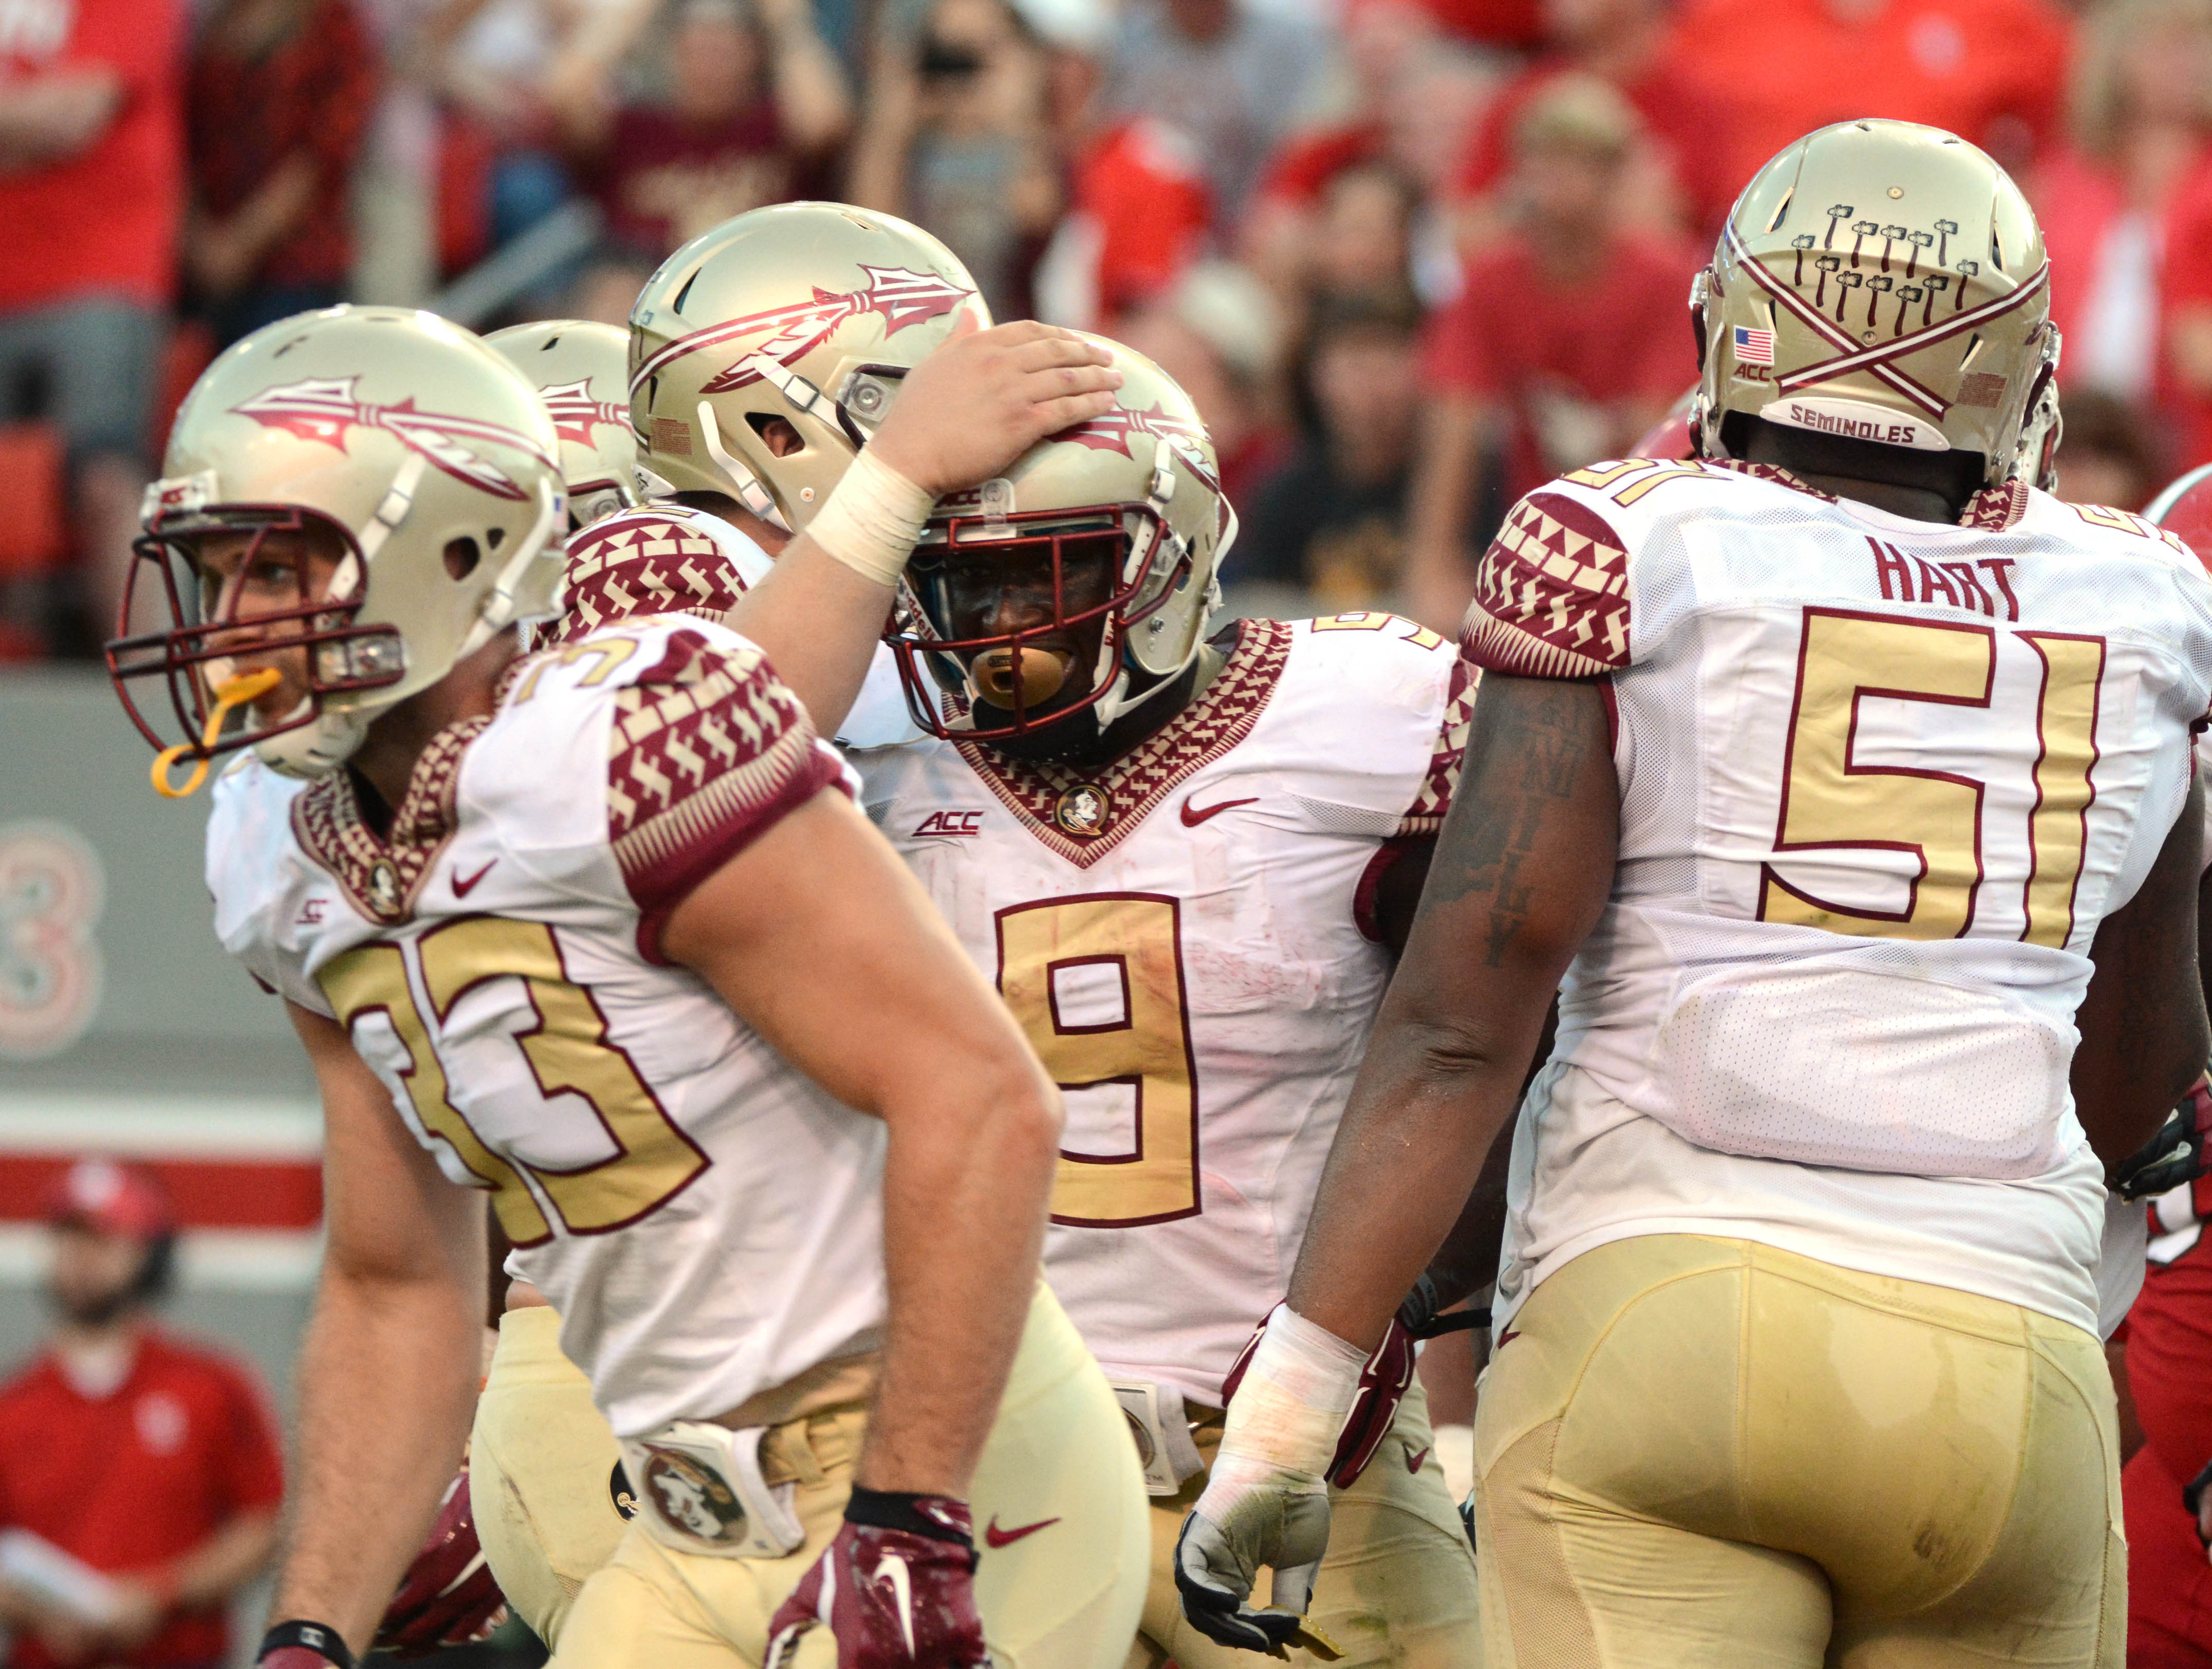 Karlos Williams (9) scored for Florida State in its rally against N.C. State  (Rob Kinnan, USA TODAY Sports)